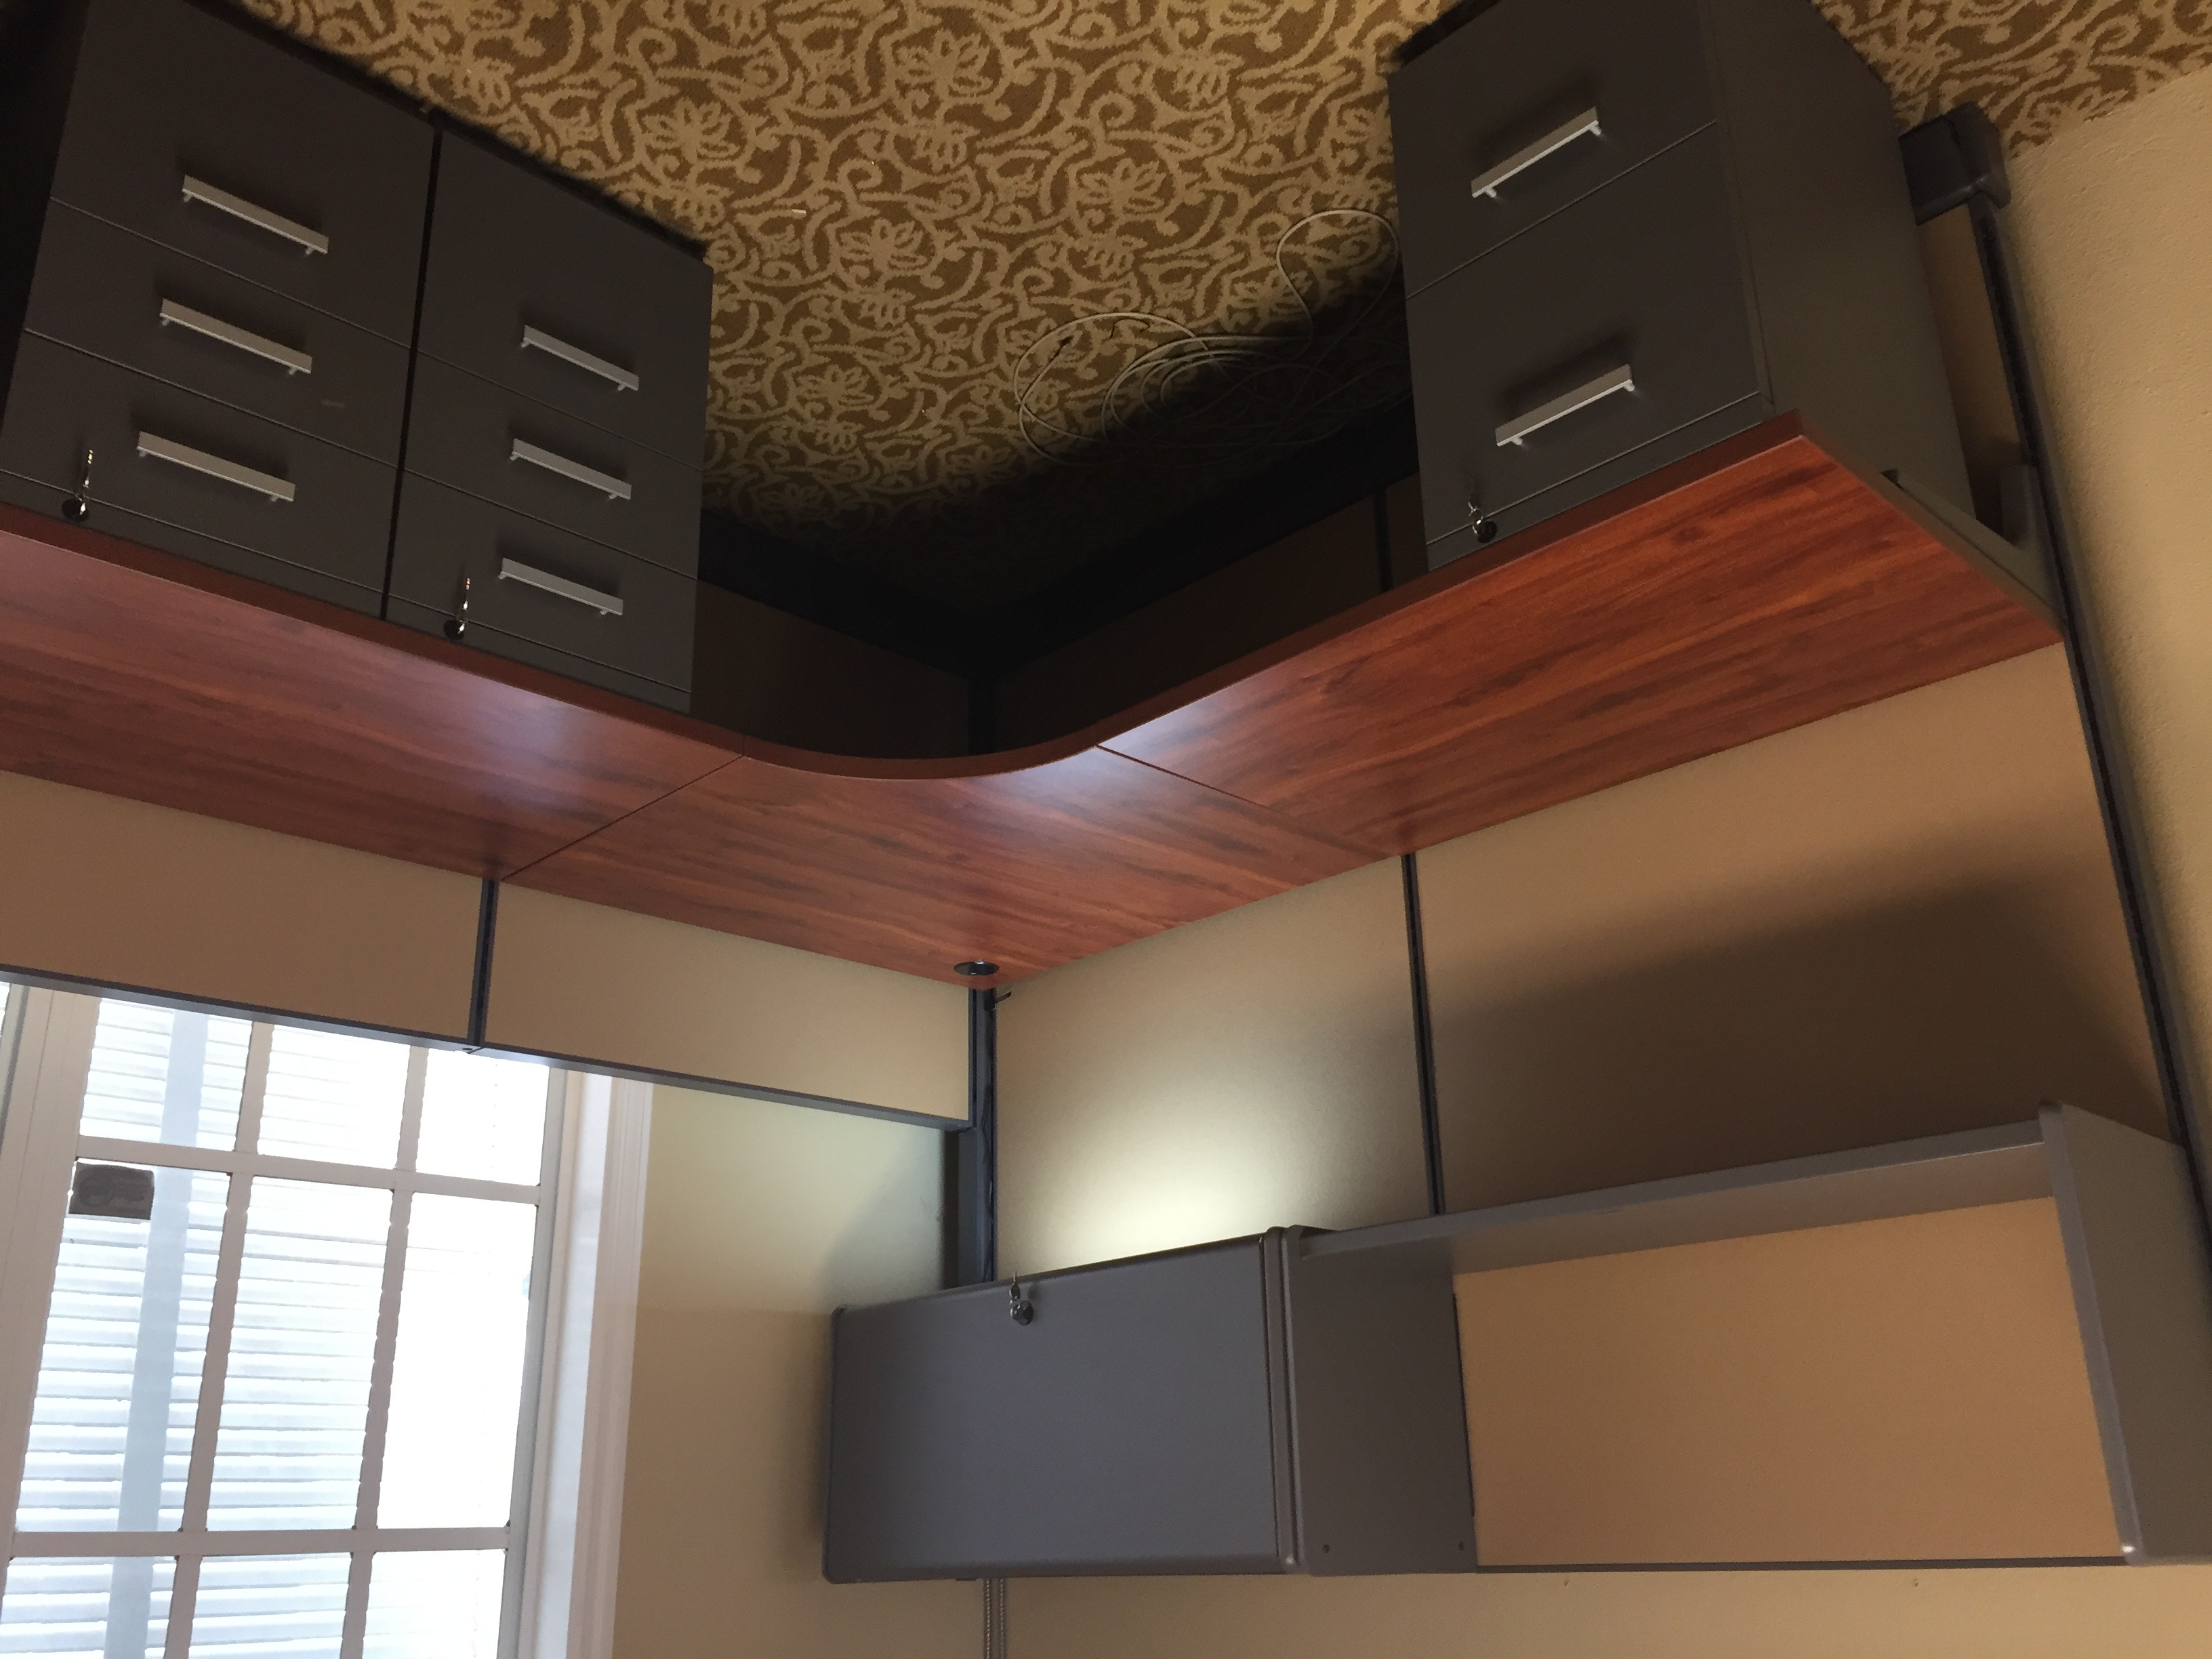 office-furniture-layout-bradenton-florida-manasota-office-supplies-llc.jpg